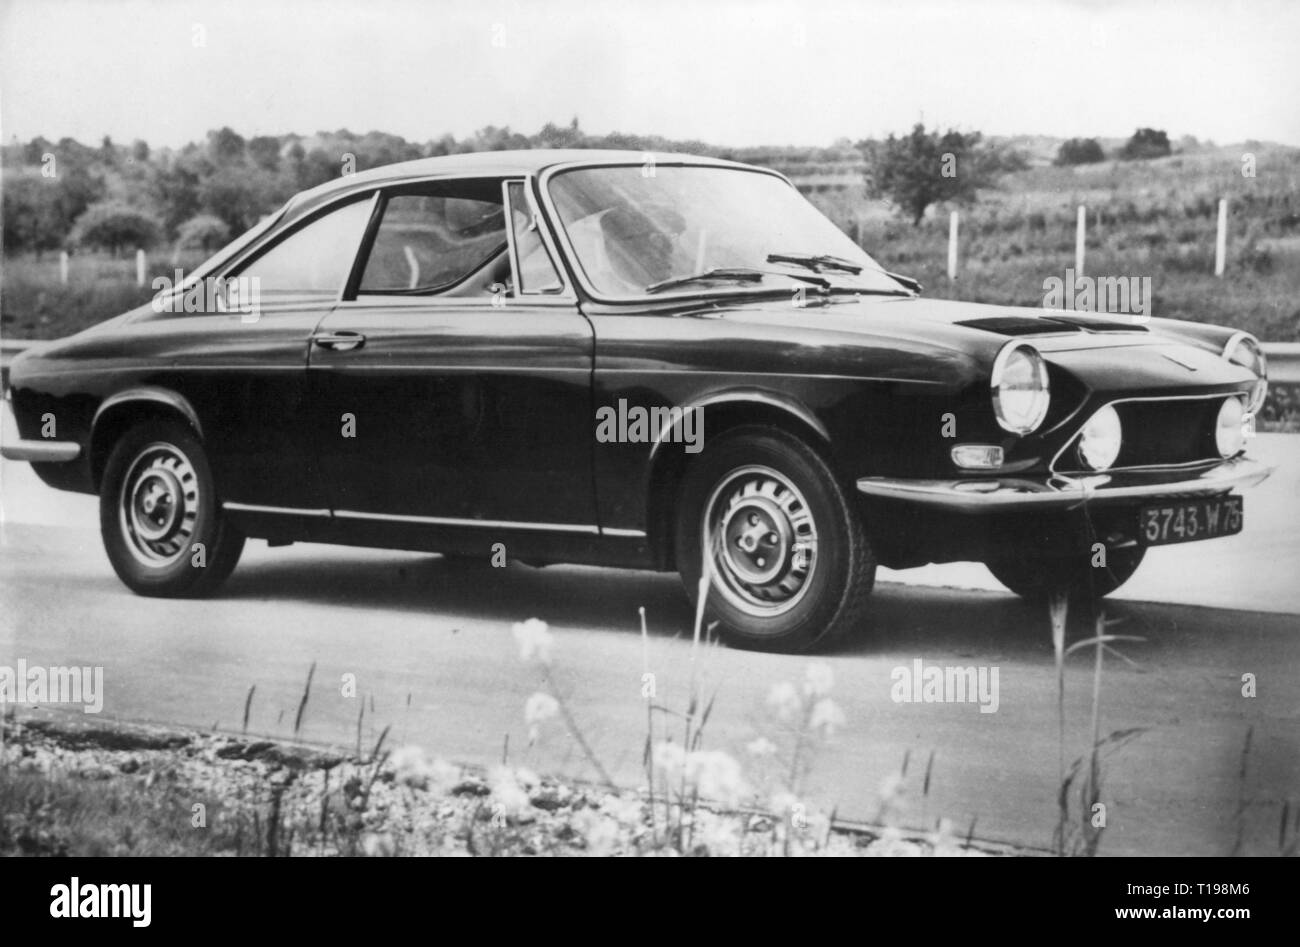 transport / transportation, car, vehicle variants, Simca 1200, exterior view, 21.6.1967, France, coupe, two-door model, motor car, auto, passenger car, motorcar, motorcars, autos, passenger cars, autocar, automobile, autocars, automobiles, power-driven vehicle, motor vehicle, motor vehicles, driving machine, vehicle, vehicles, 20th century, 1960s, transport, transportation, car, cars, historic, historical, people, Additional-Rights-Clearance-Info-Not-Available - Stock Image